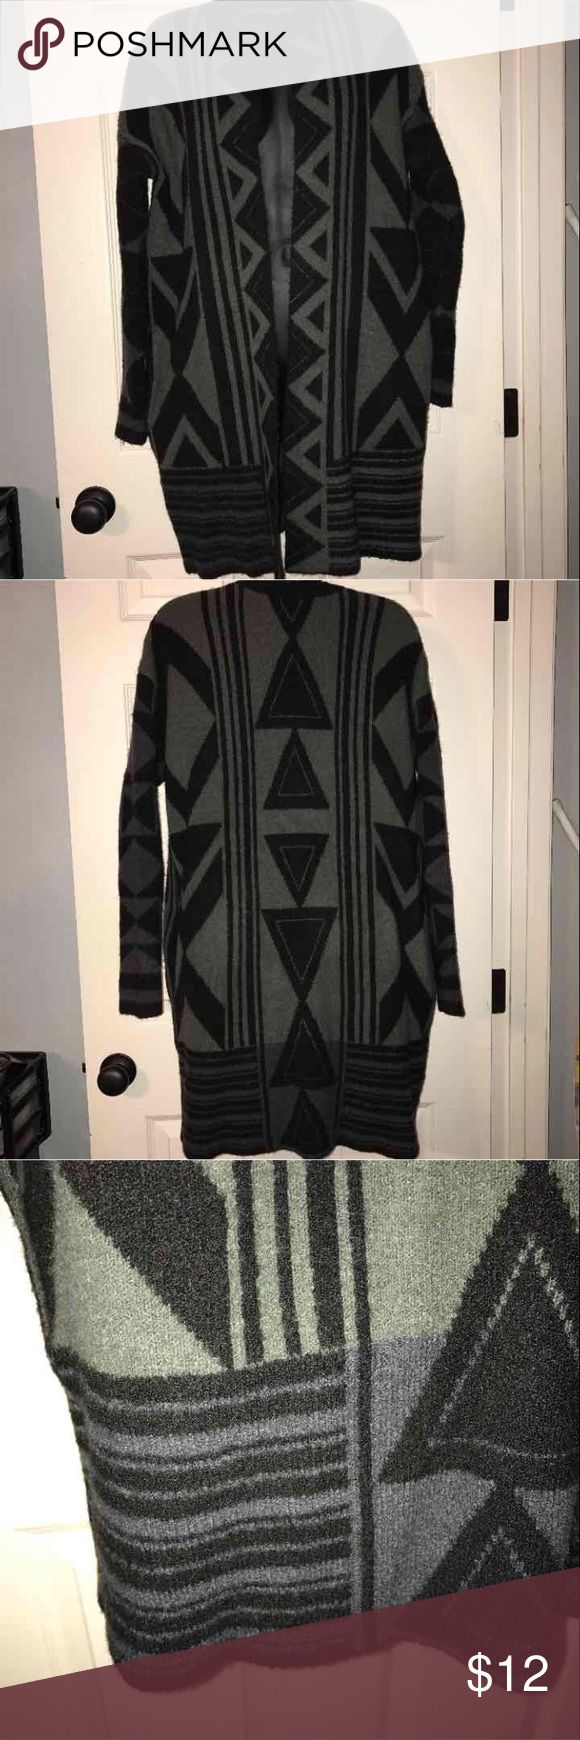 F21 longline tribal print cardigan Sz S Forever 21 longline, open front cardigan, tribal print, size small.  Colors are black, olive, and a blue color (on sleeves, and panel at end of cardigan.) also has pockets! Forever 21 Sweaters Cardigans